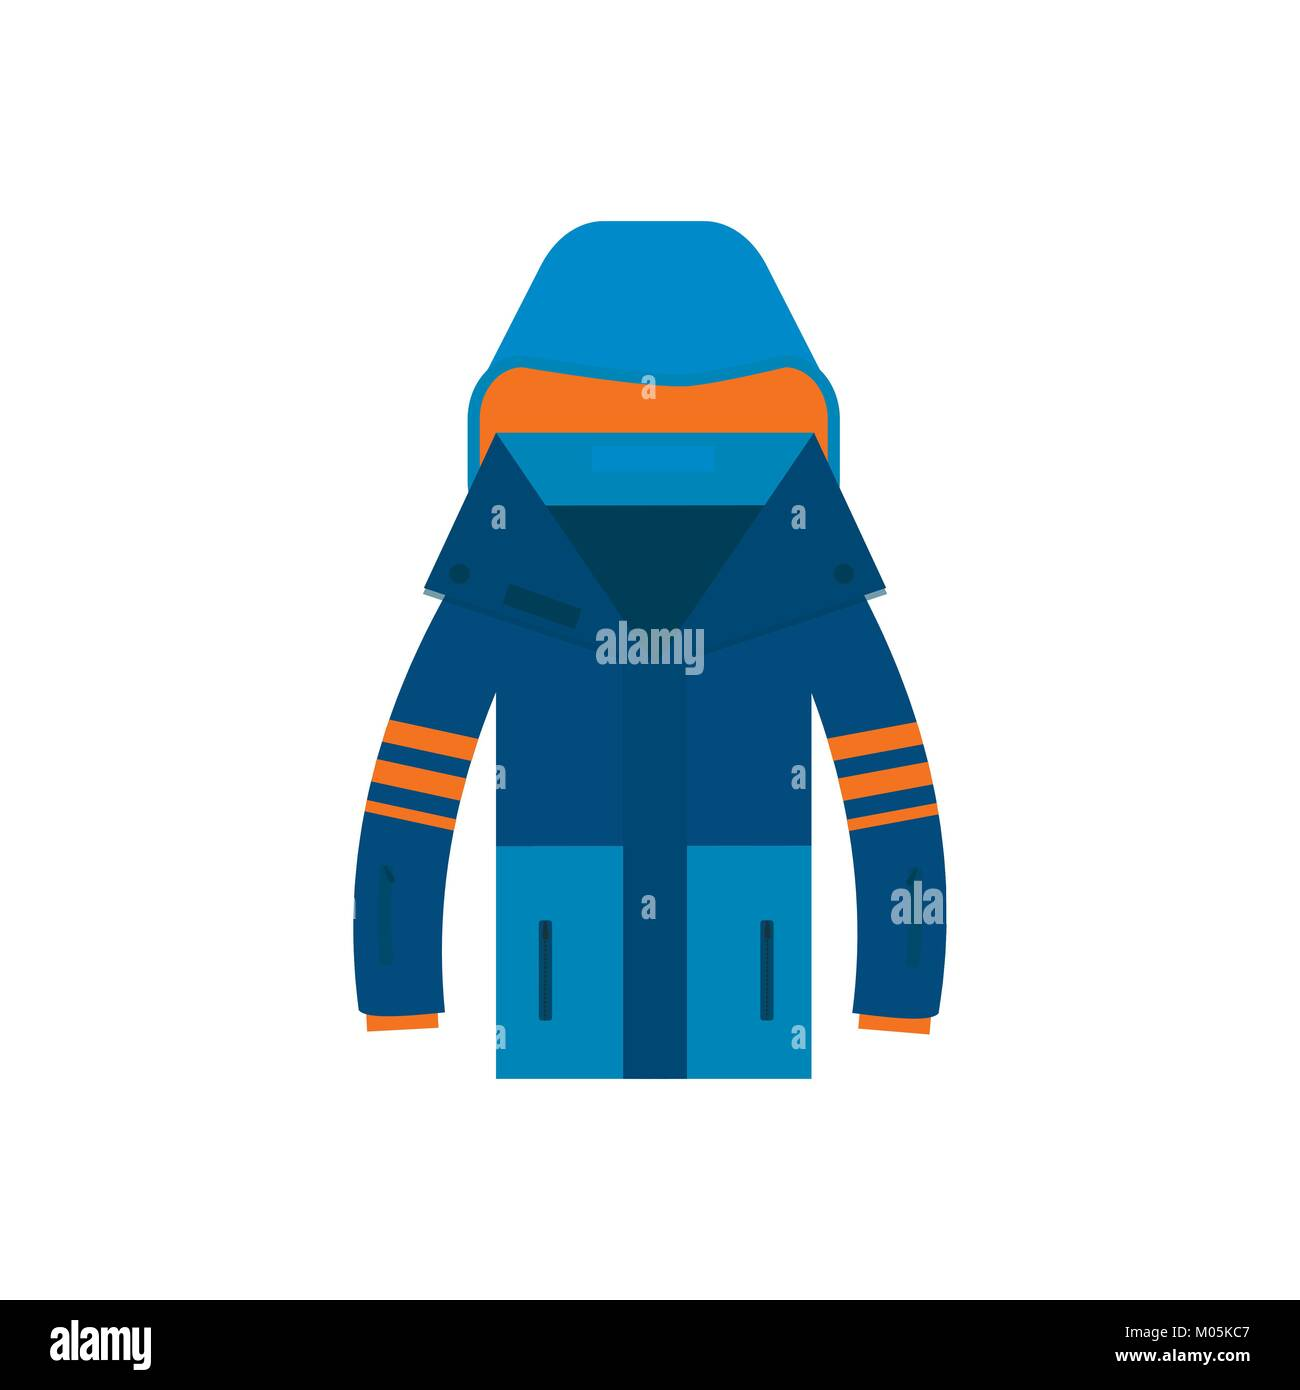 af2977a7473f Winter sport icon jaket for Skiing and snowboarding isolated on white  background in flat style design. Elements for ski resort picture, mountain  acti